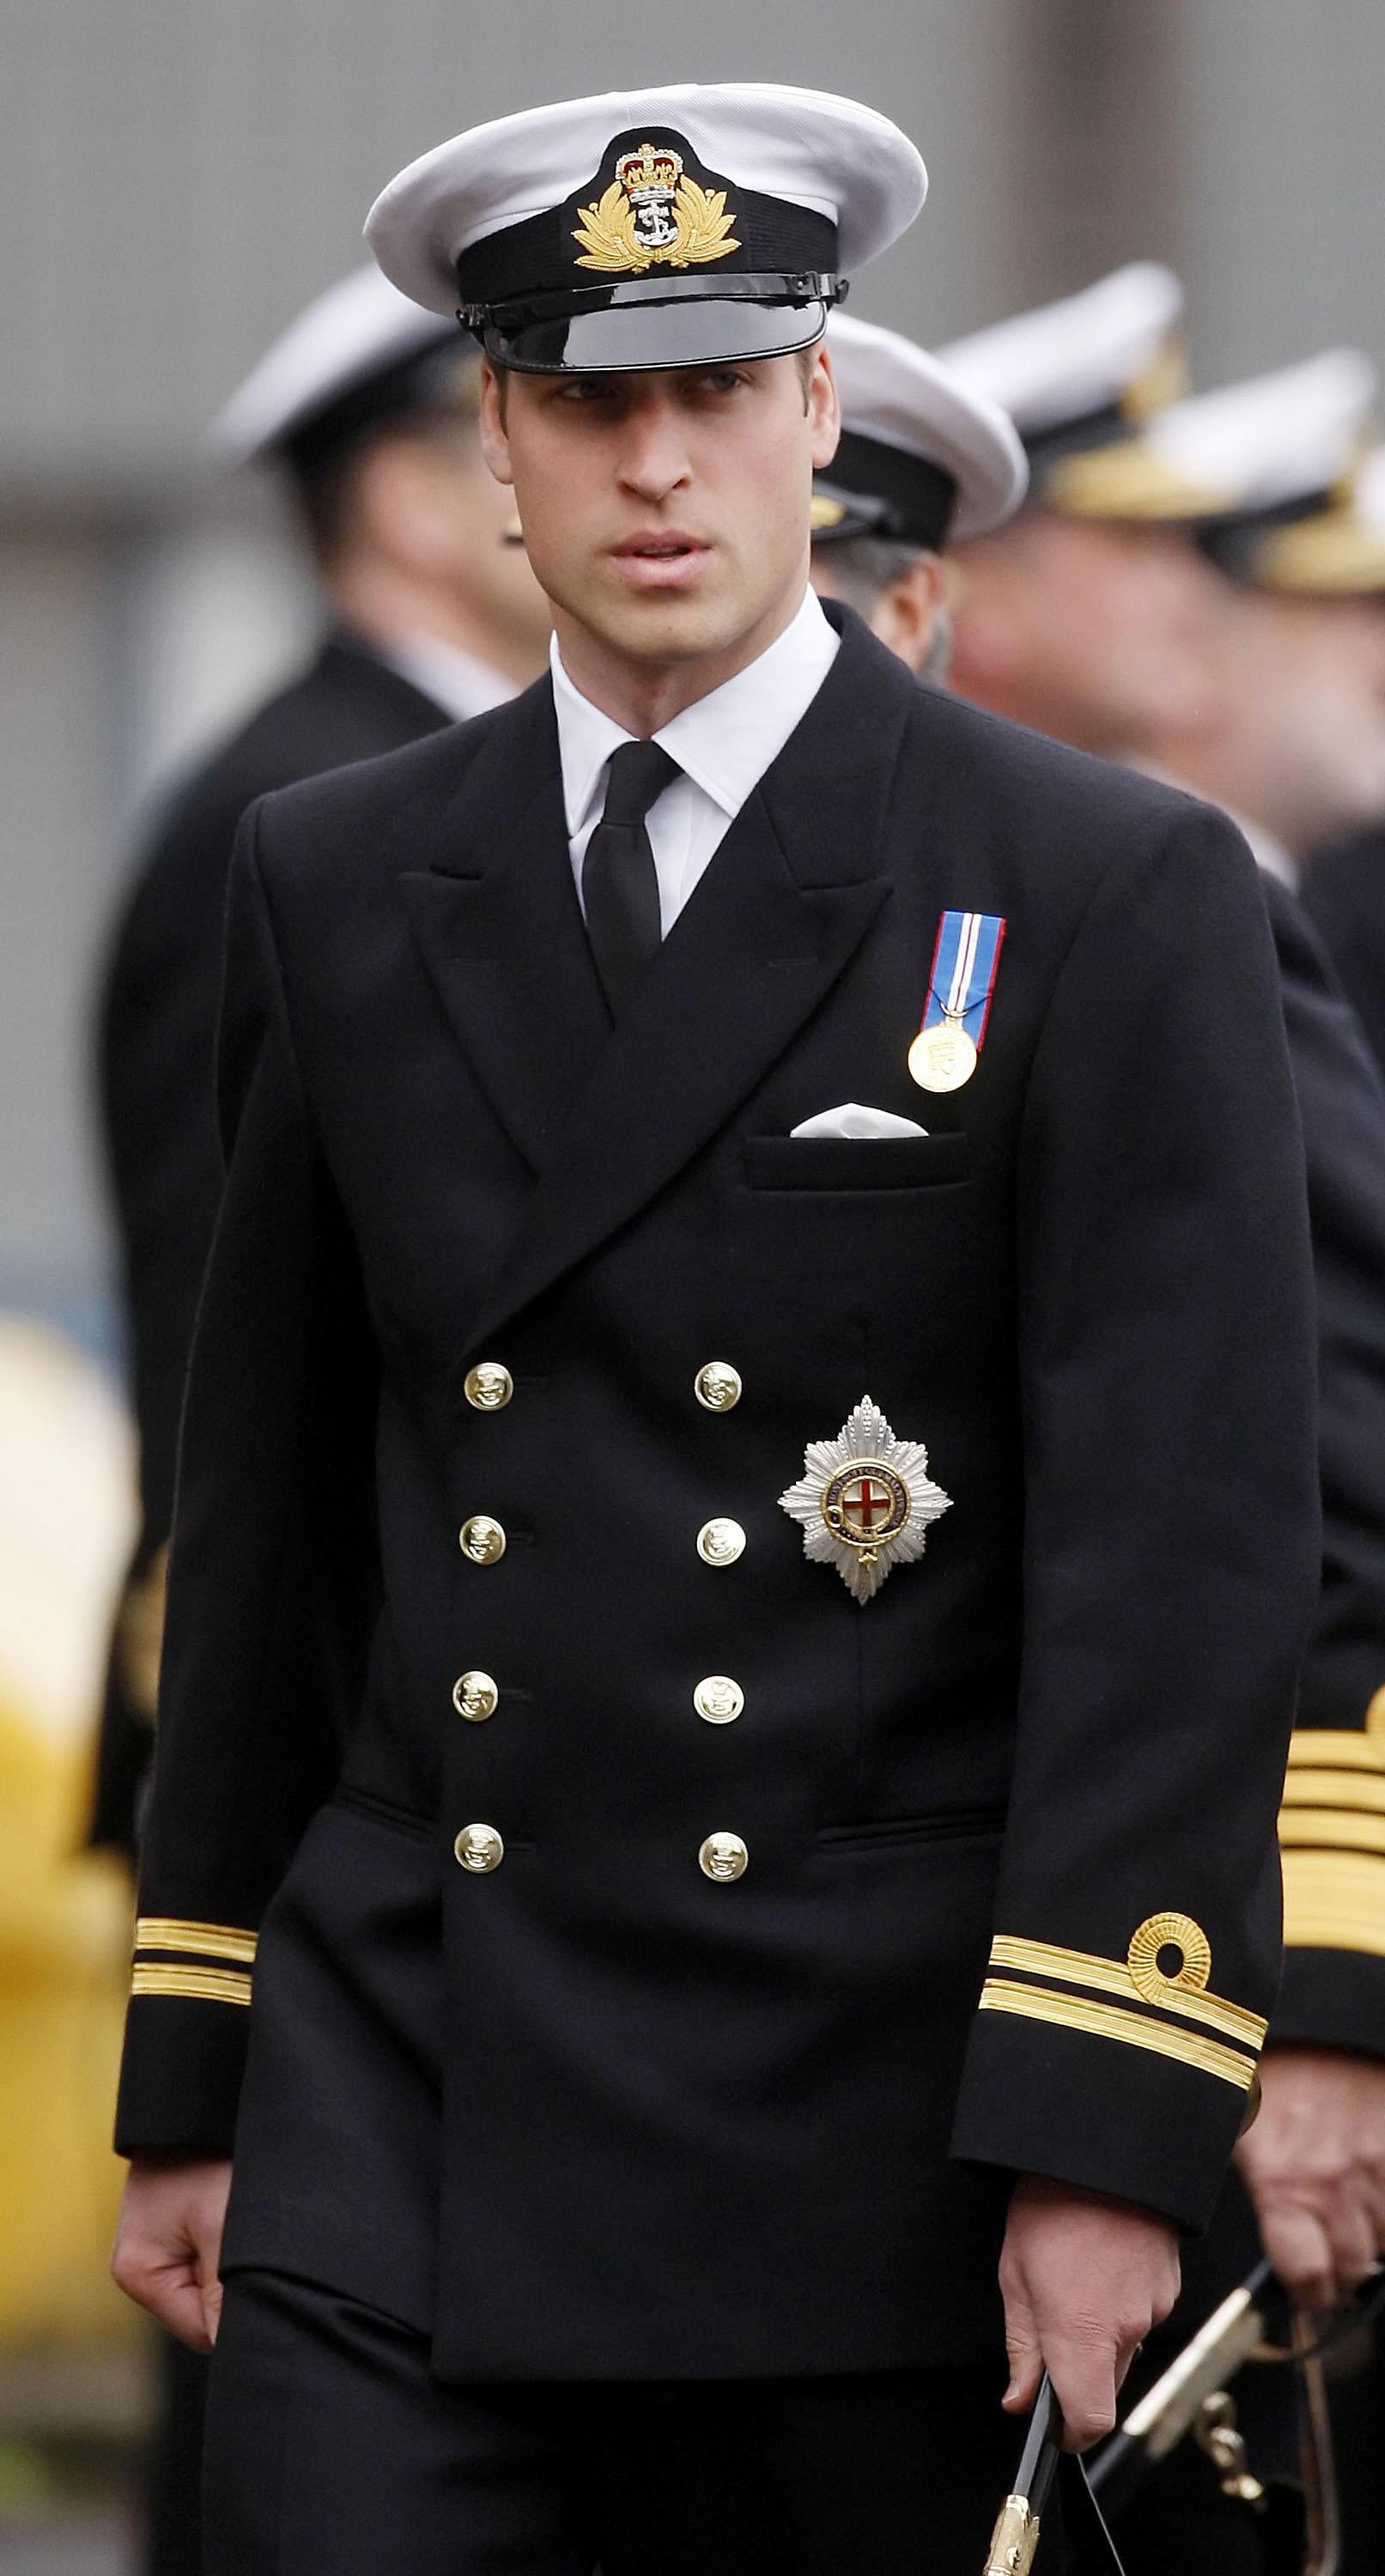 prince william to wear his military uniform for royal wedding to